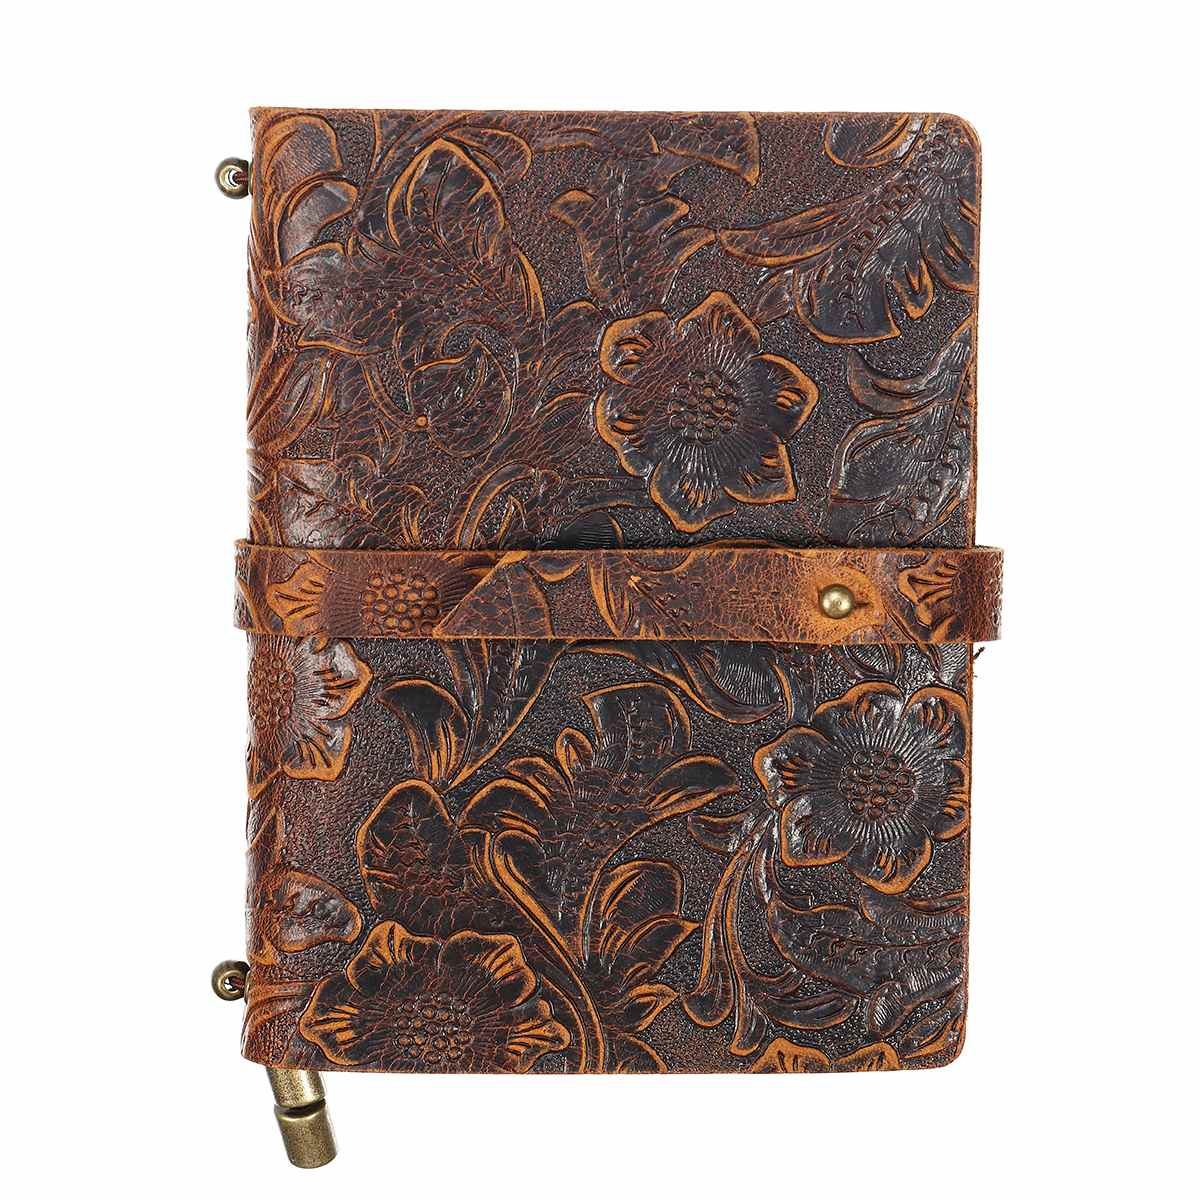 Notebook Notepad Vintage  Anchors PU Leather Note Book Traveler Journal Diary Handmade Embossed Stitched Notebook